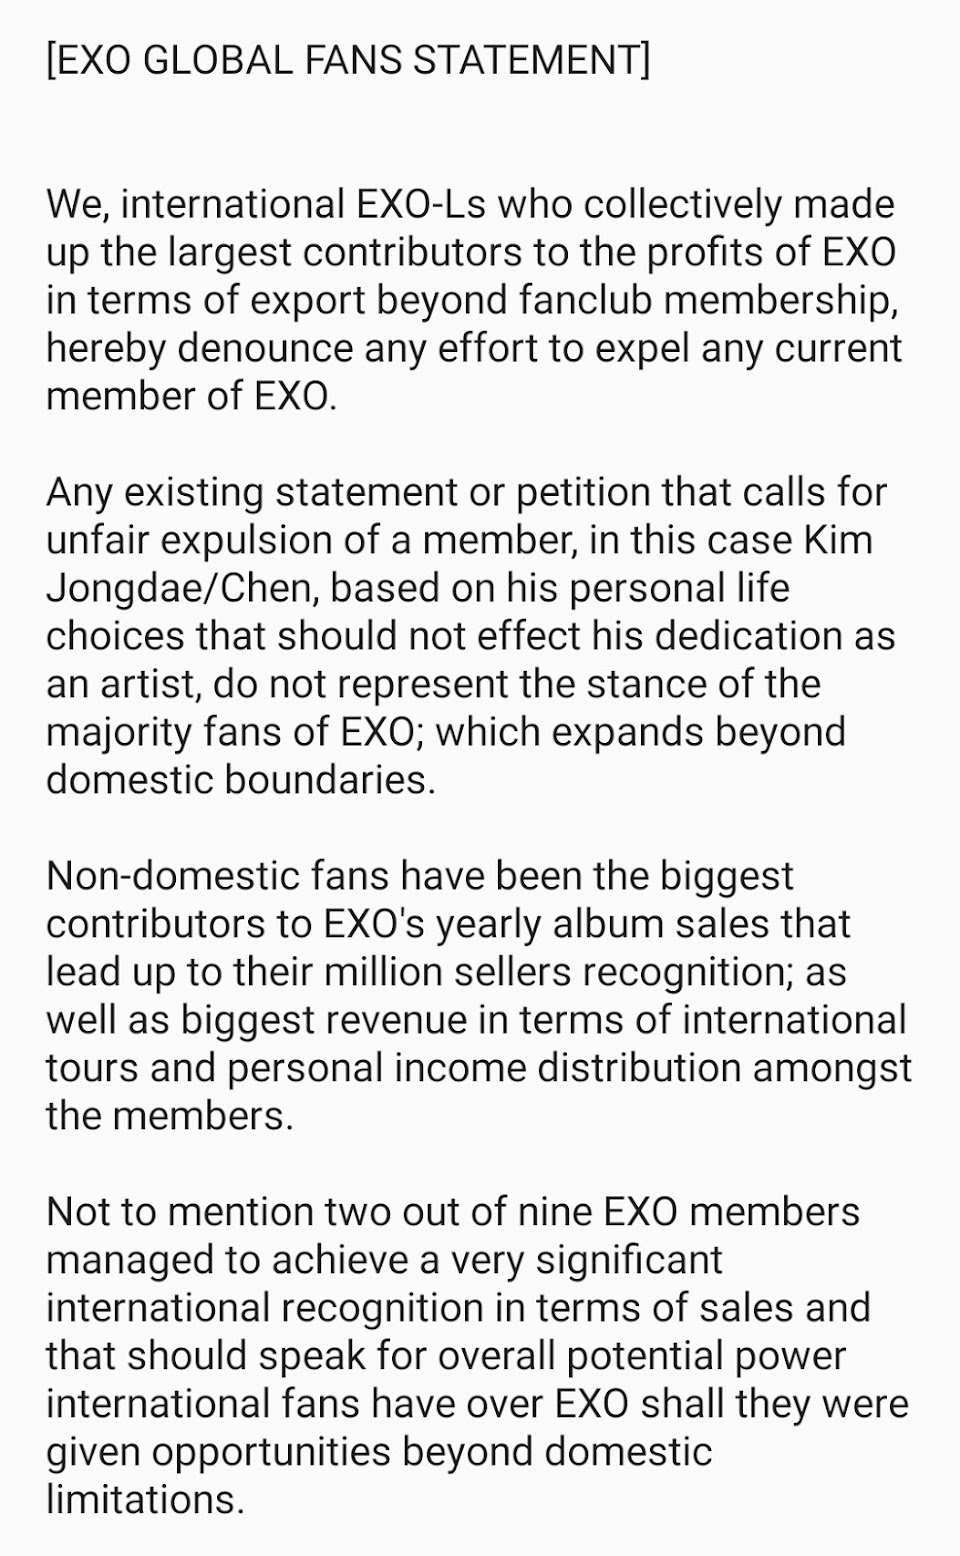 exo global statement 1